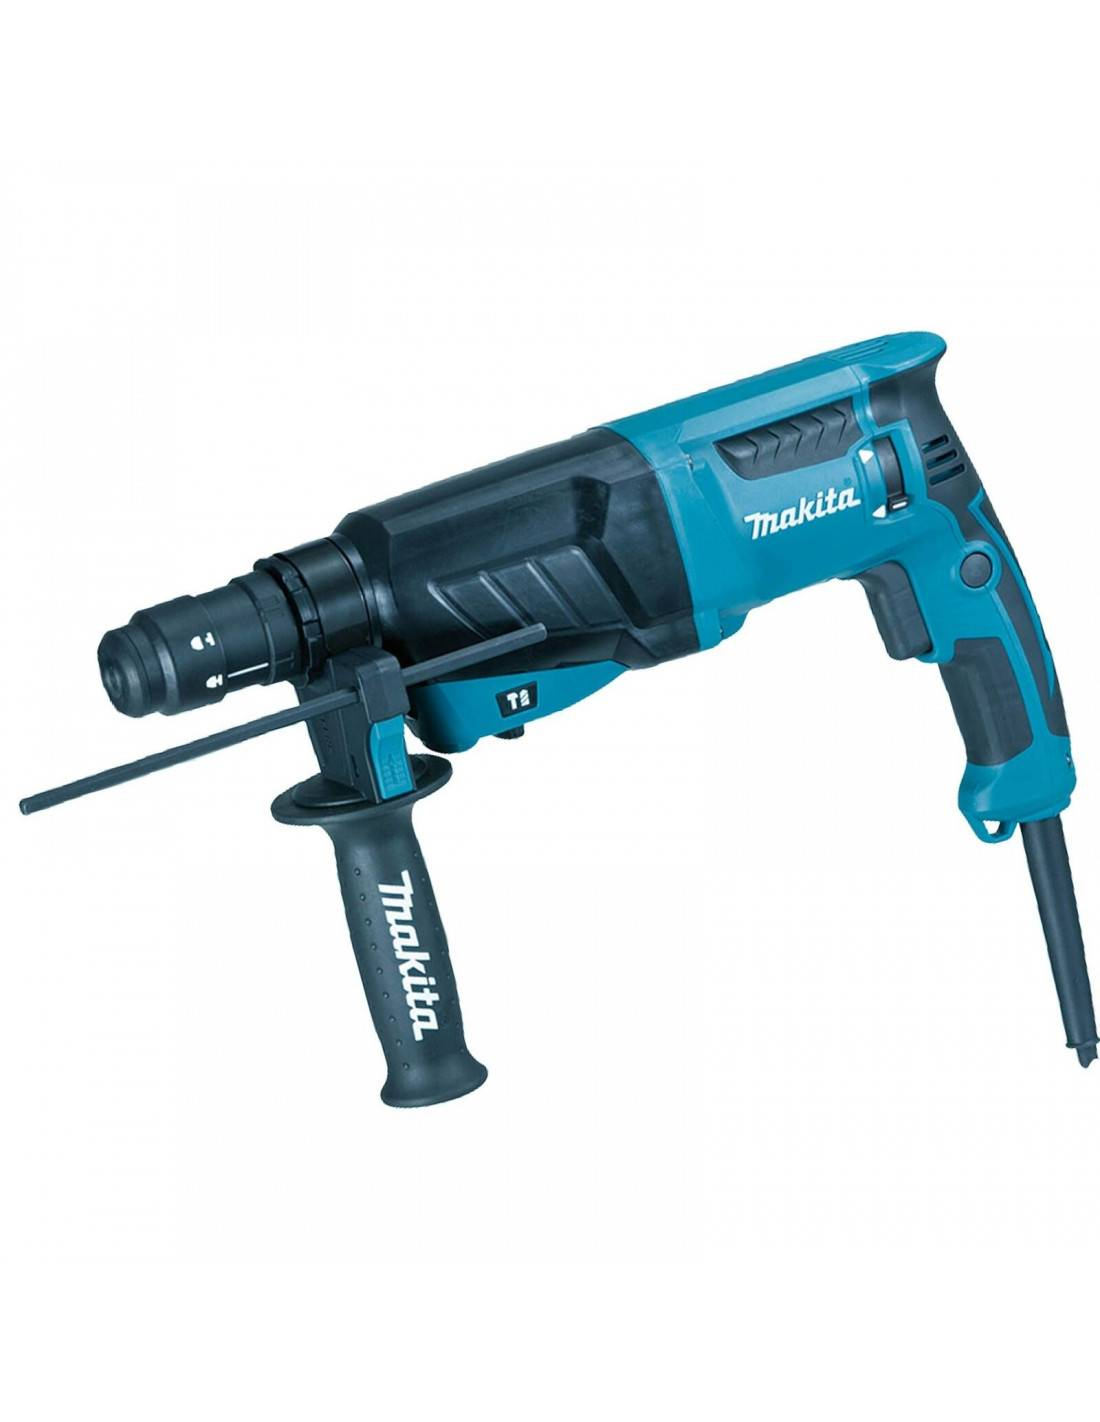 MAKITA - Perforateur SDS+ 800W en coffret standard - HR2630T